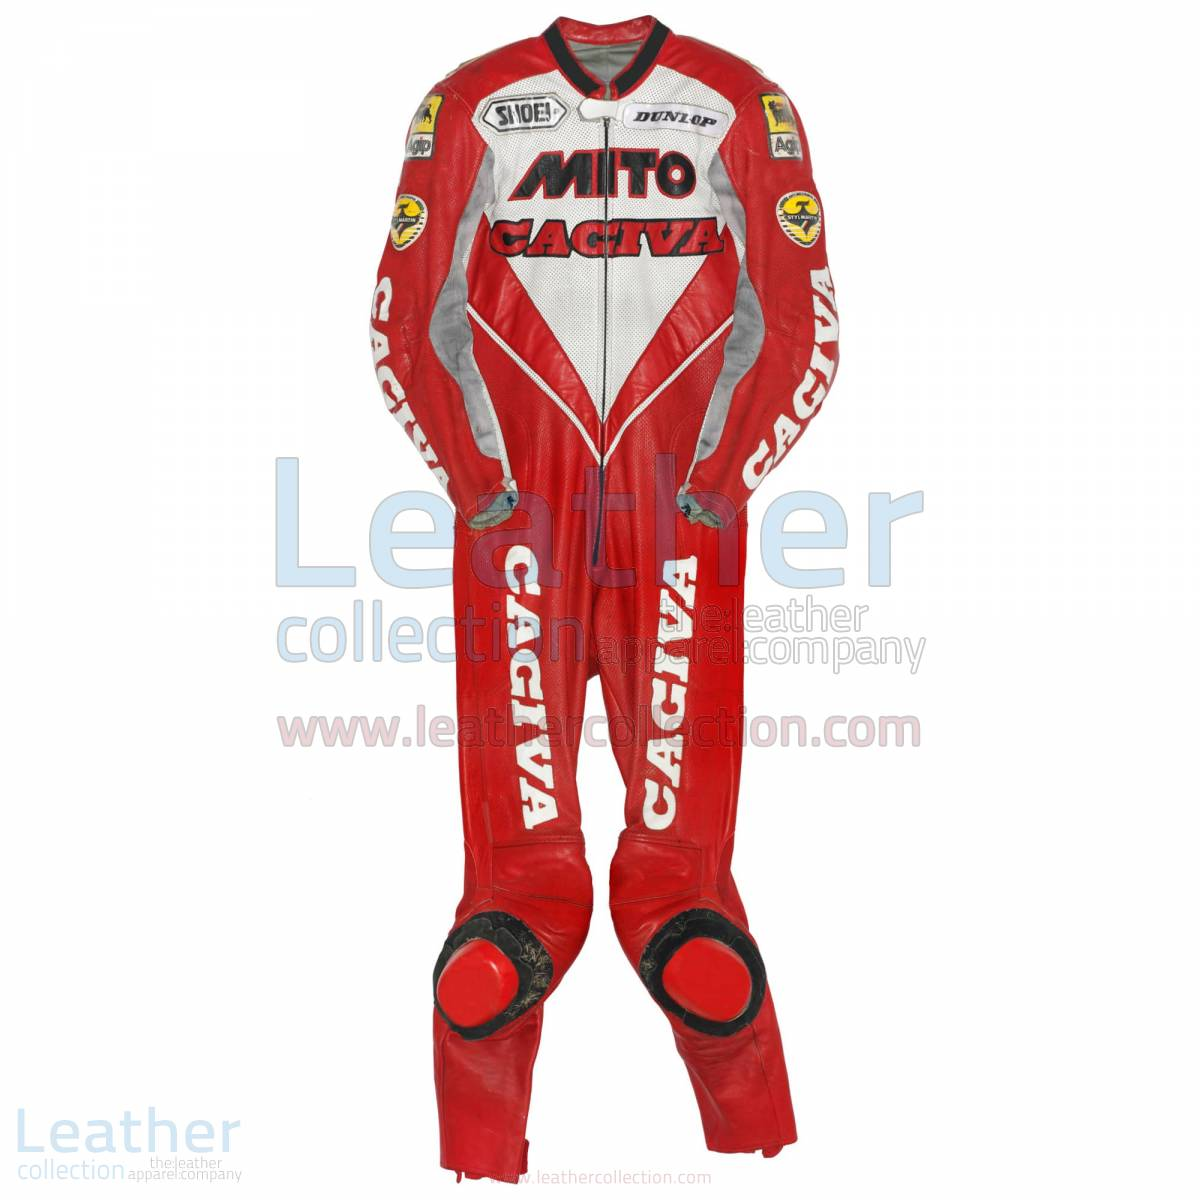 Eddie Lawson Cagiva 1992 Motorcycle Suit